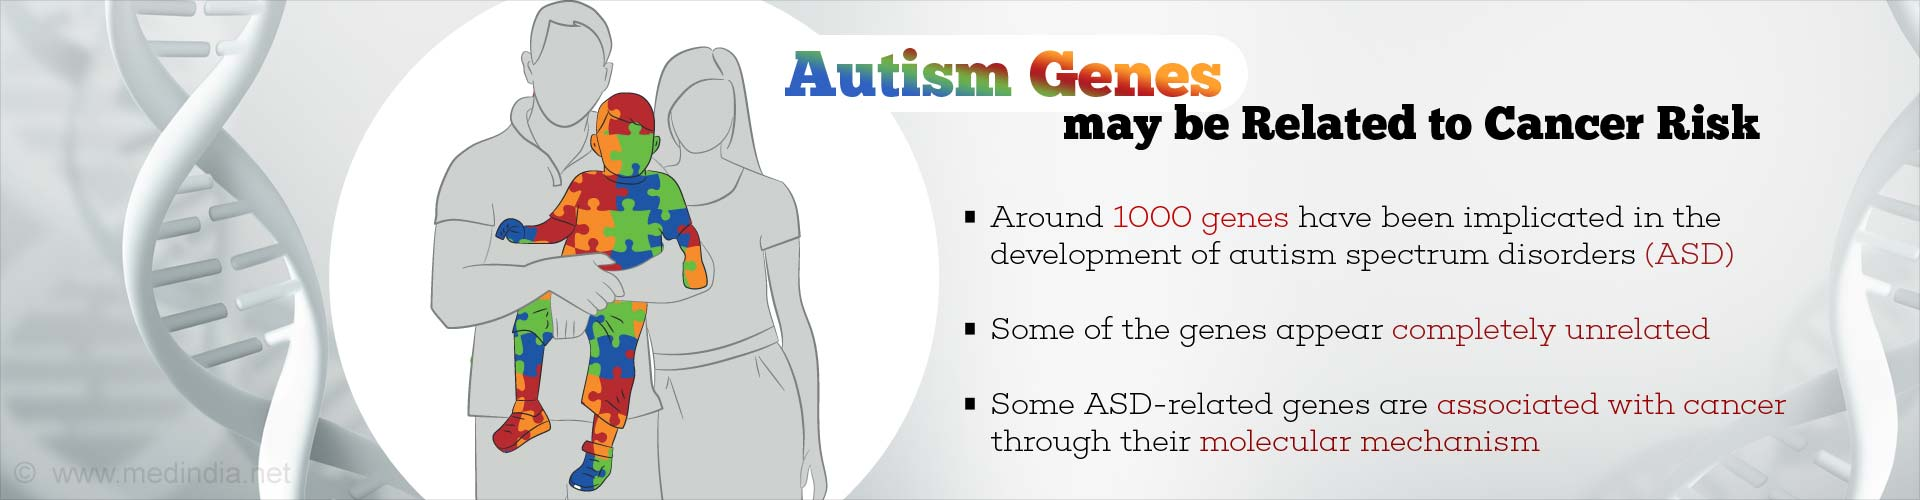 Autism genes may be related to cancer risk